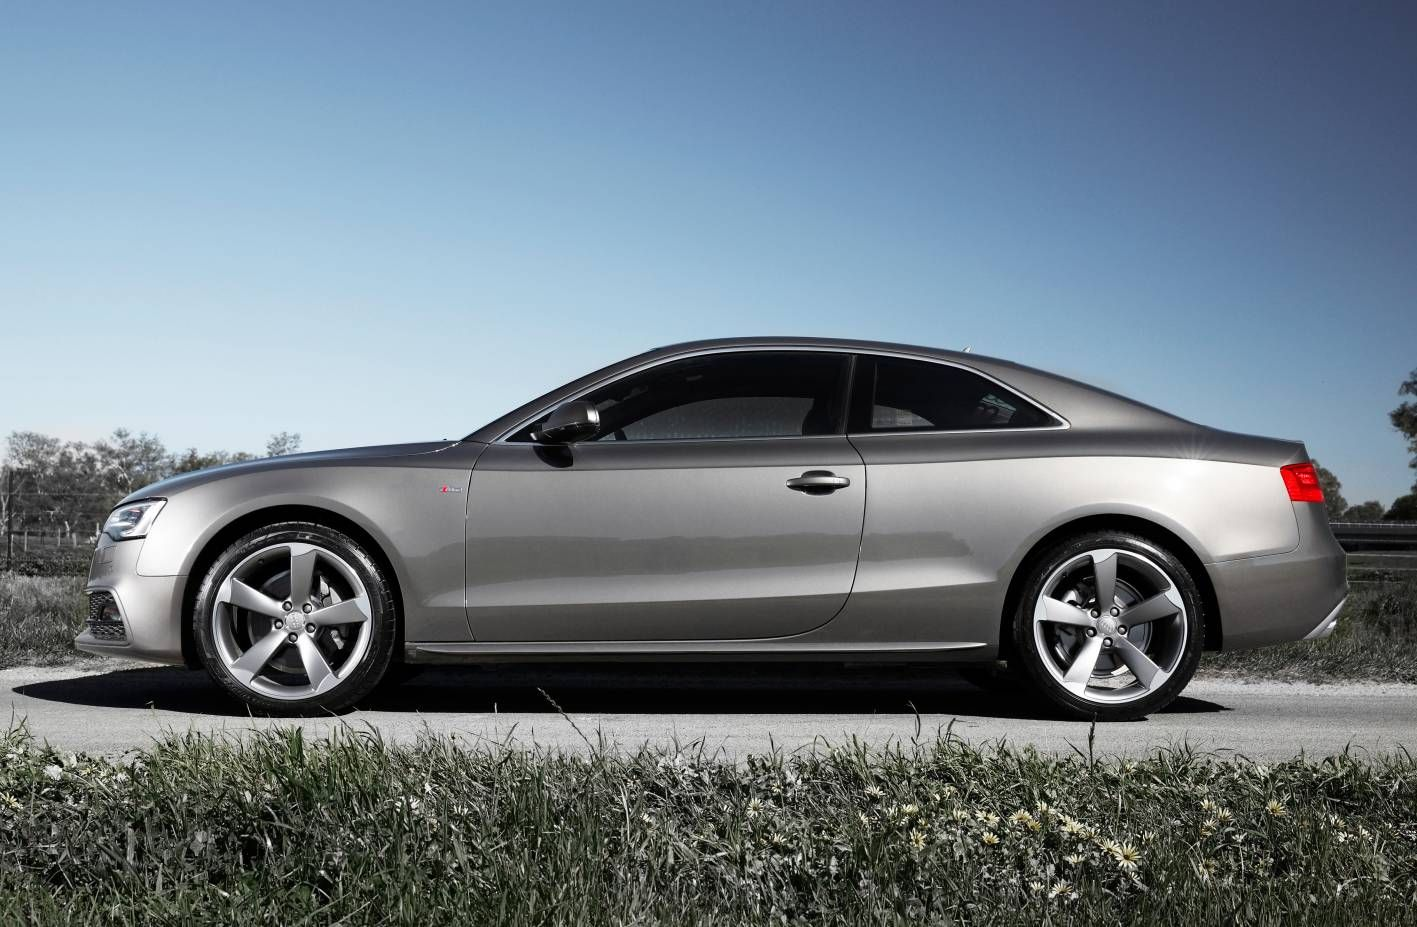 2015 audi a5 coupe what i really want ha not affordable. Black Bedroom Furniture Sets. Home Design Ideas